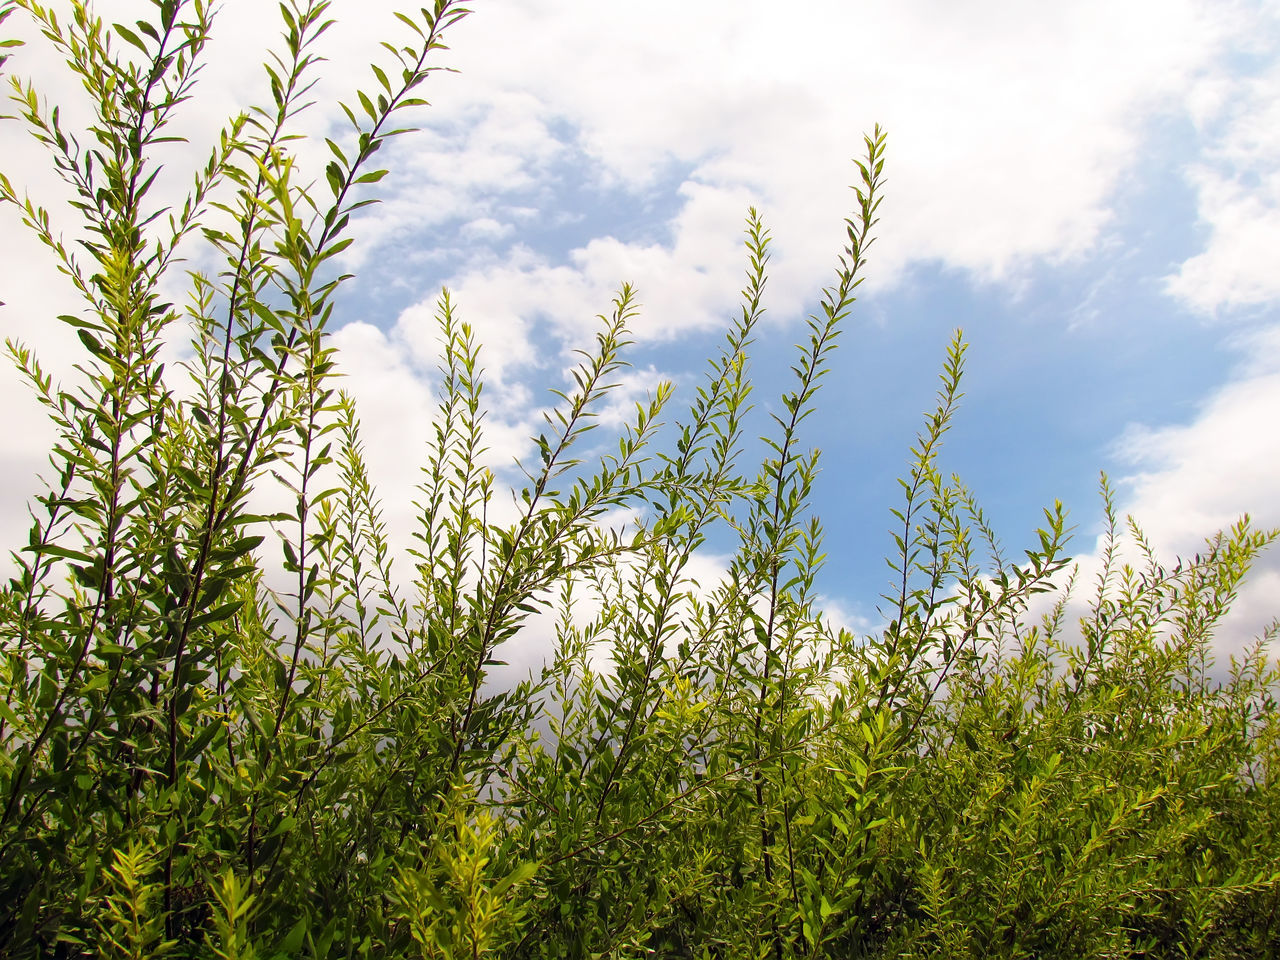 growth, nature, plant, green color, no people, beauty in nature, day, sky, outdoors, grass, close-up, freshness